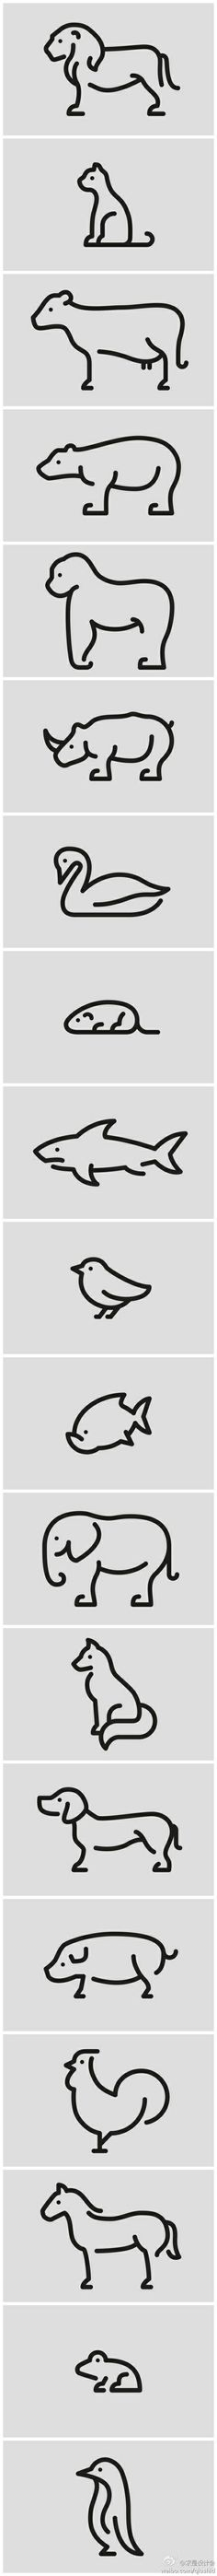 the last one is a penguin! <3